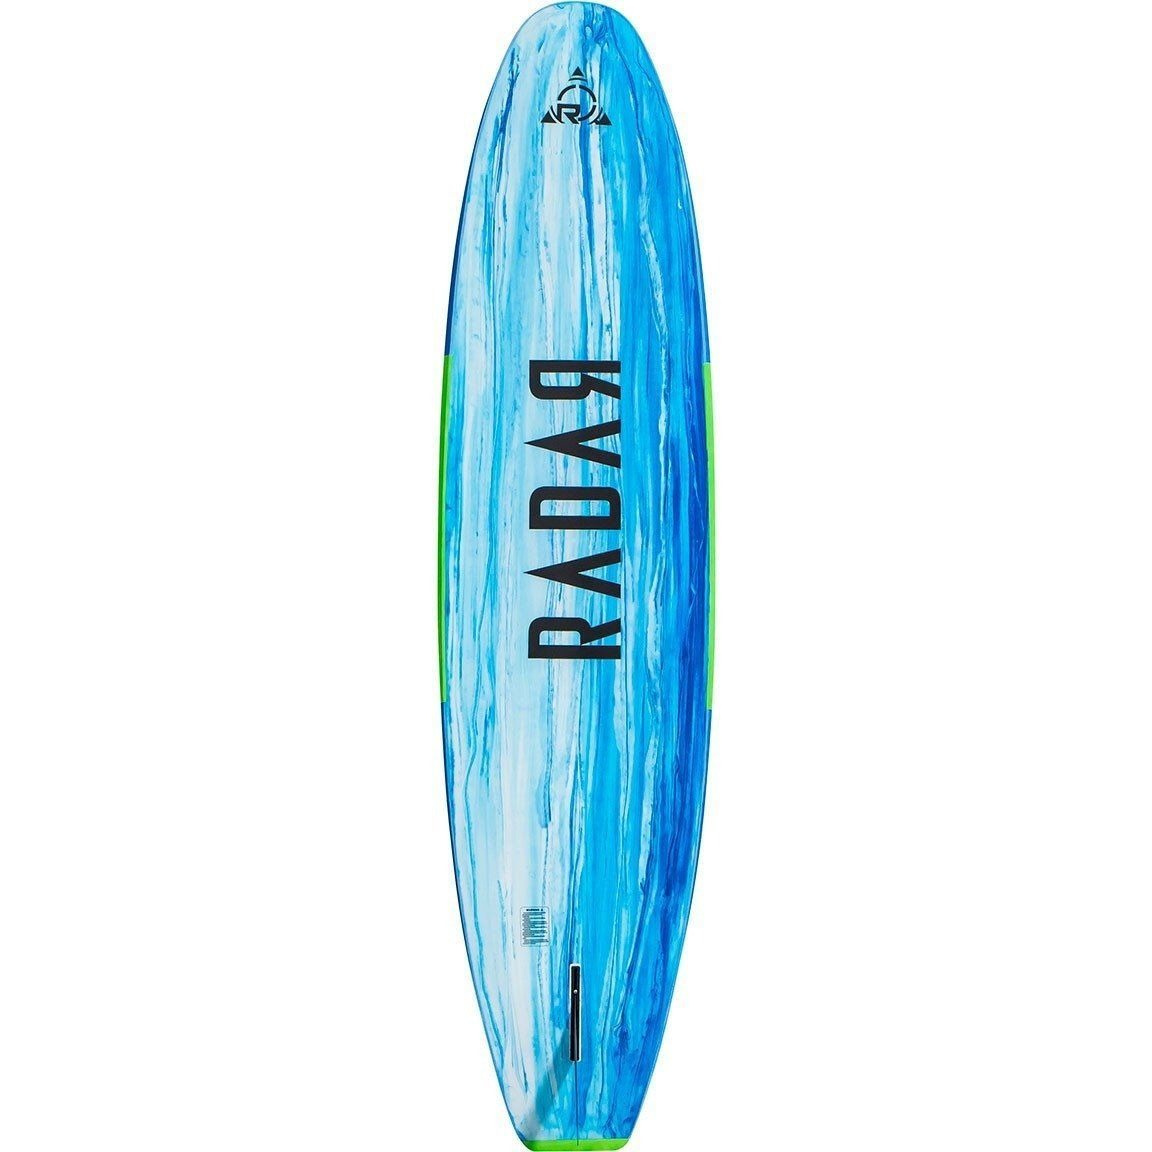 Radar Cadence Men's SUP - 2017 - Store Pick up Only - 88 Gear